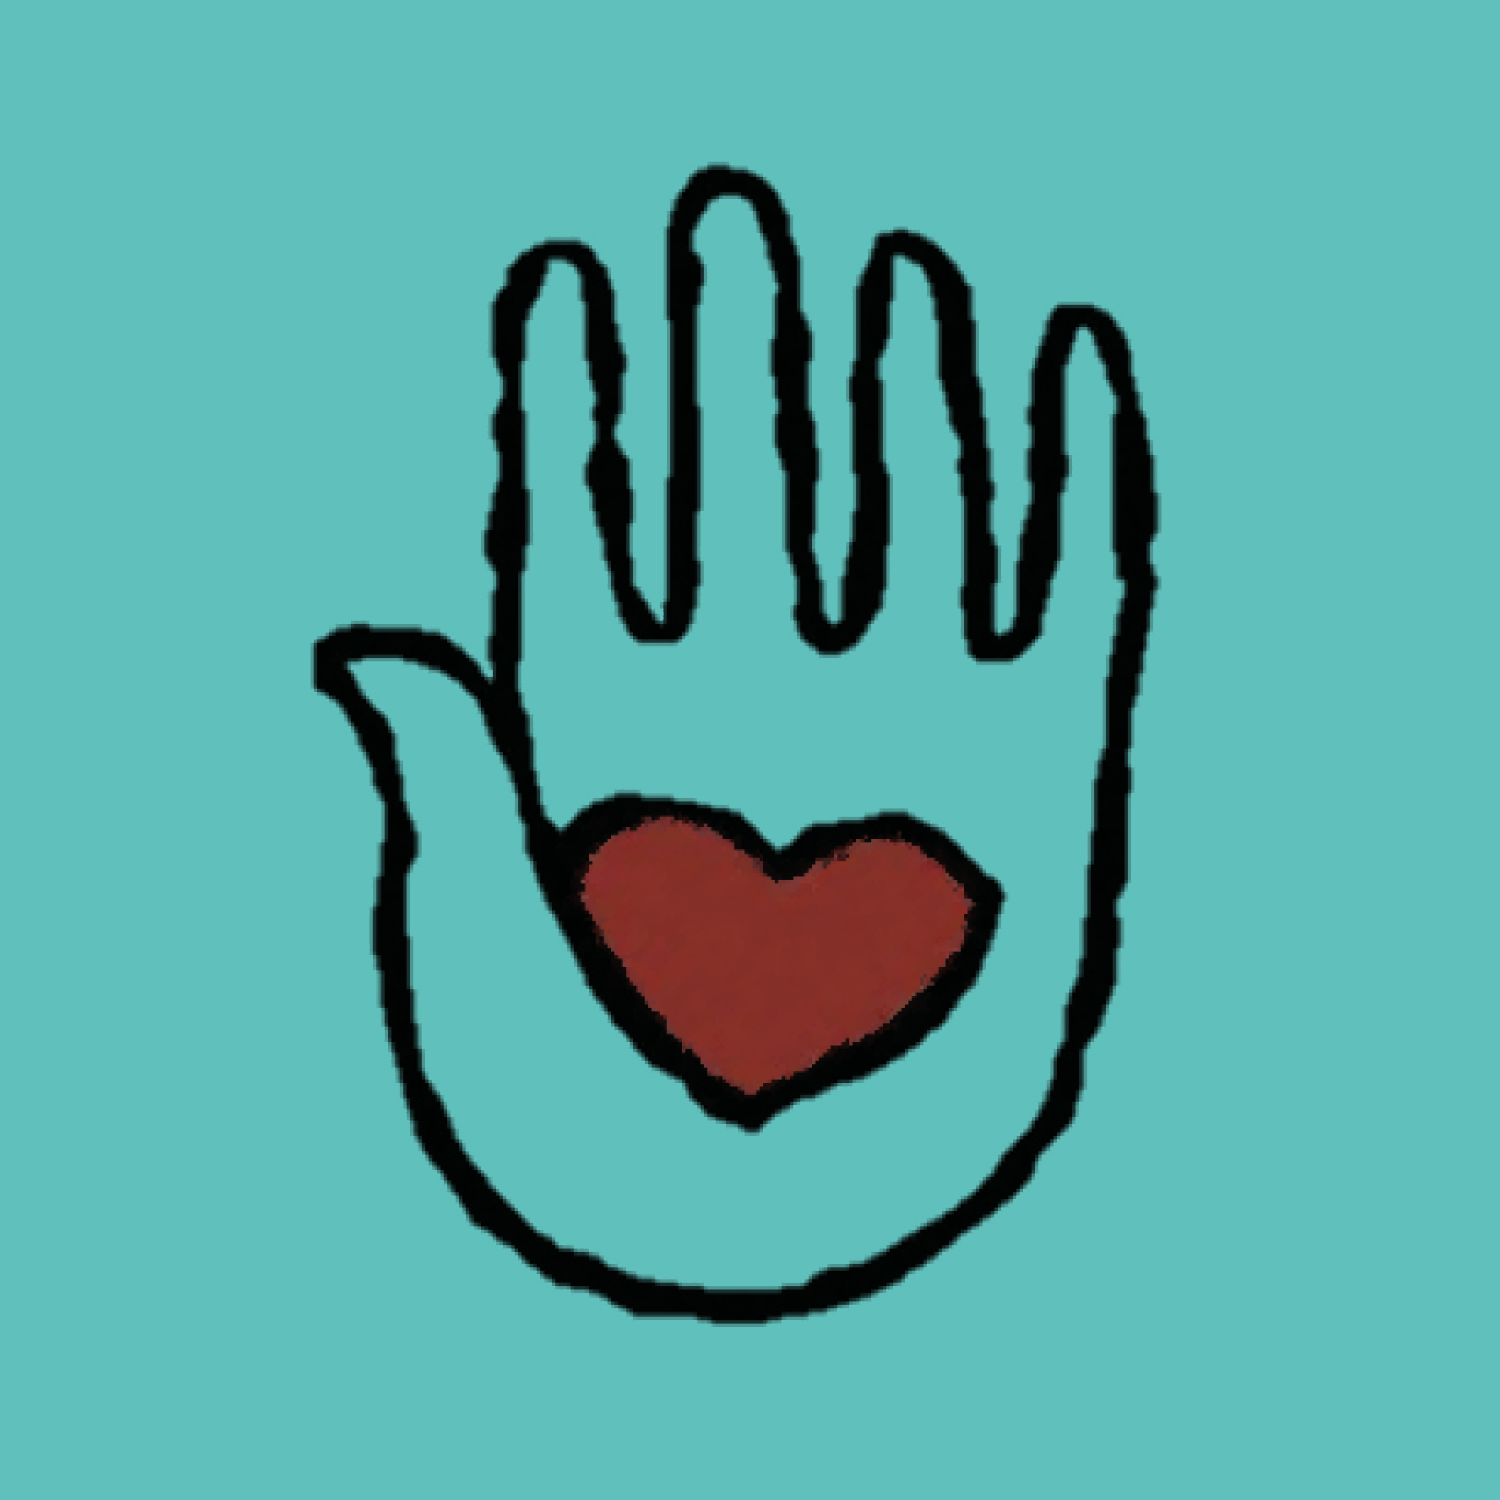 SAPAC hand on teal background